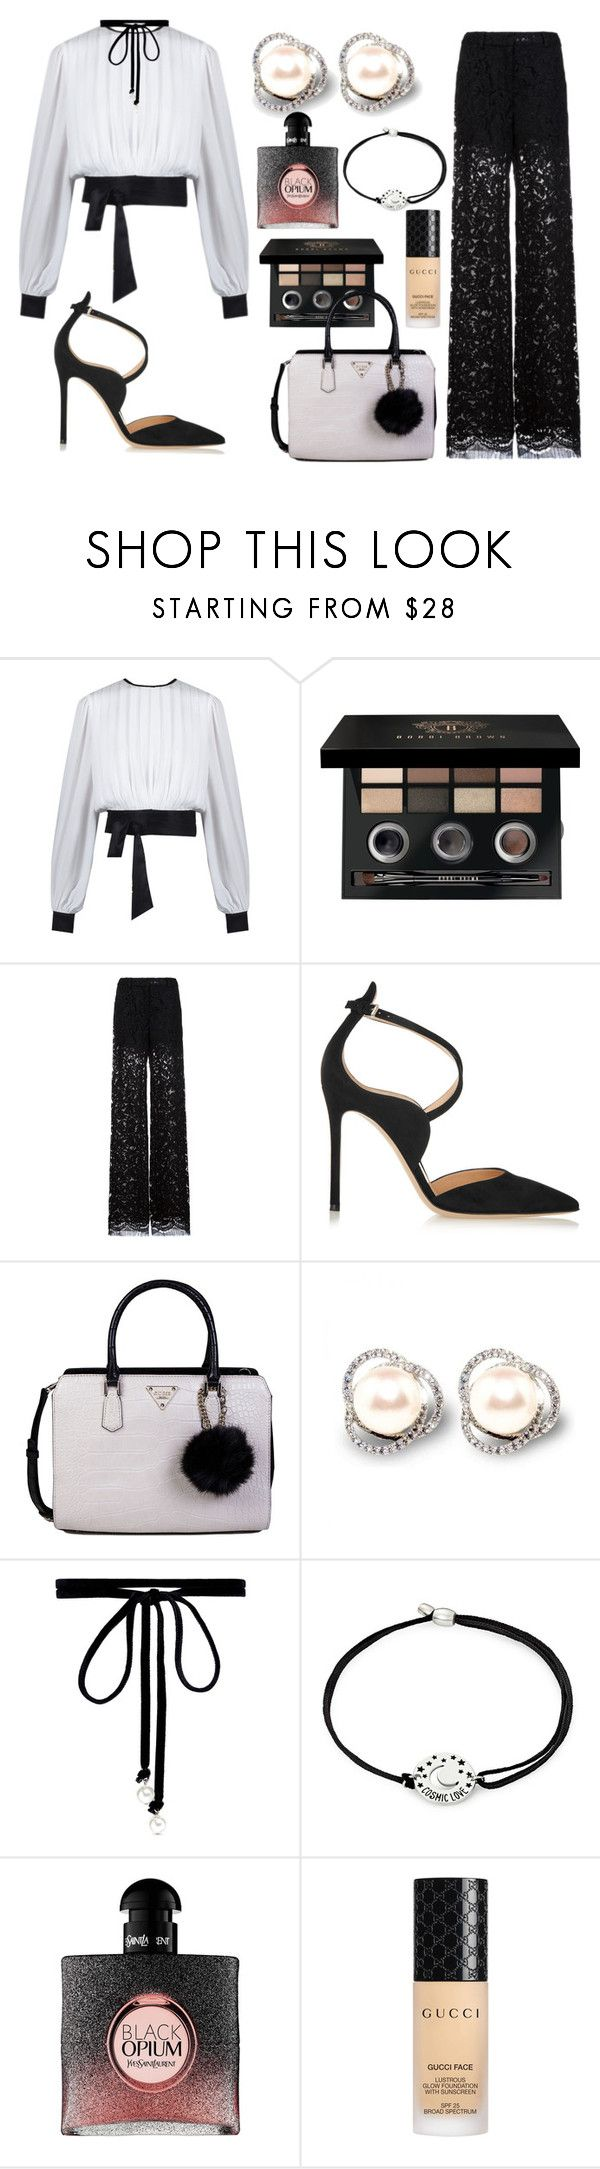 """""""I'm back mon amour"""" by lujzazsu ❤ liked on Polyvore featuring Bobbi Brown Cosmetics, ADAM, Gianvito Rossi, GUESS, Joomi Lim, Alex and Ani, Yves Saint Laurent, Gucci, blackandwhite and officialwoman"""